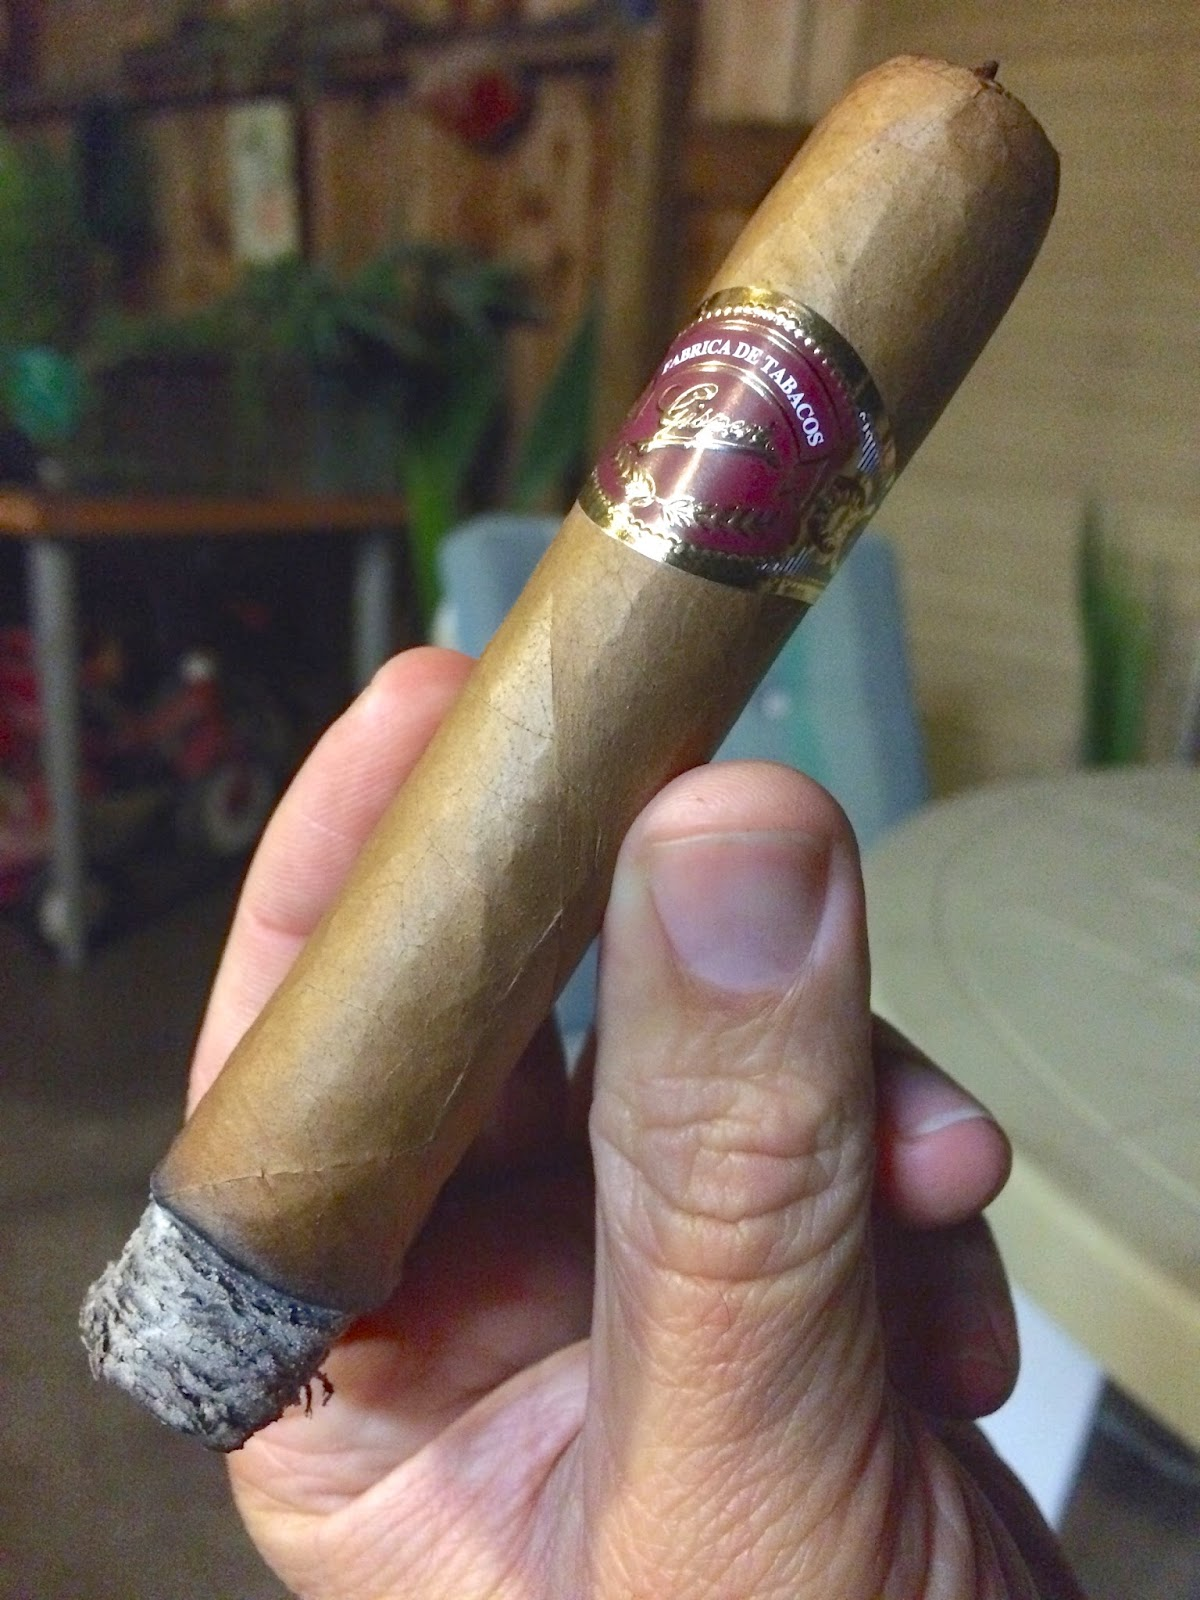 Gispert Connecticut Robusto 2